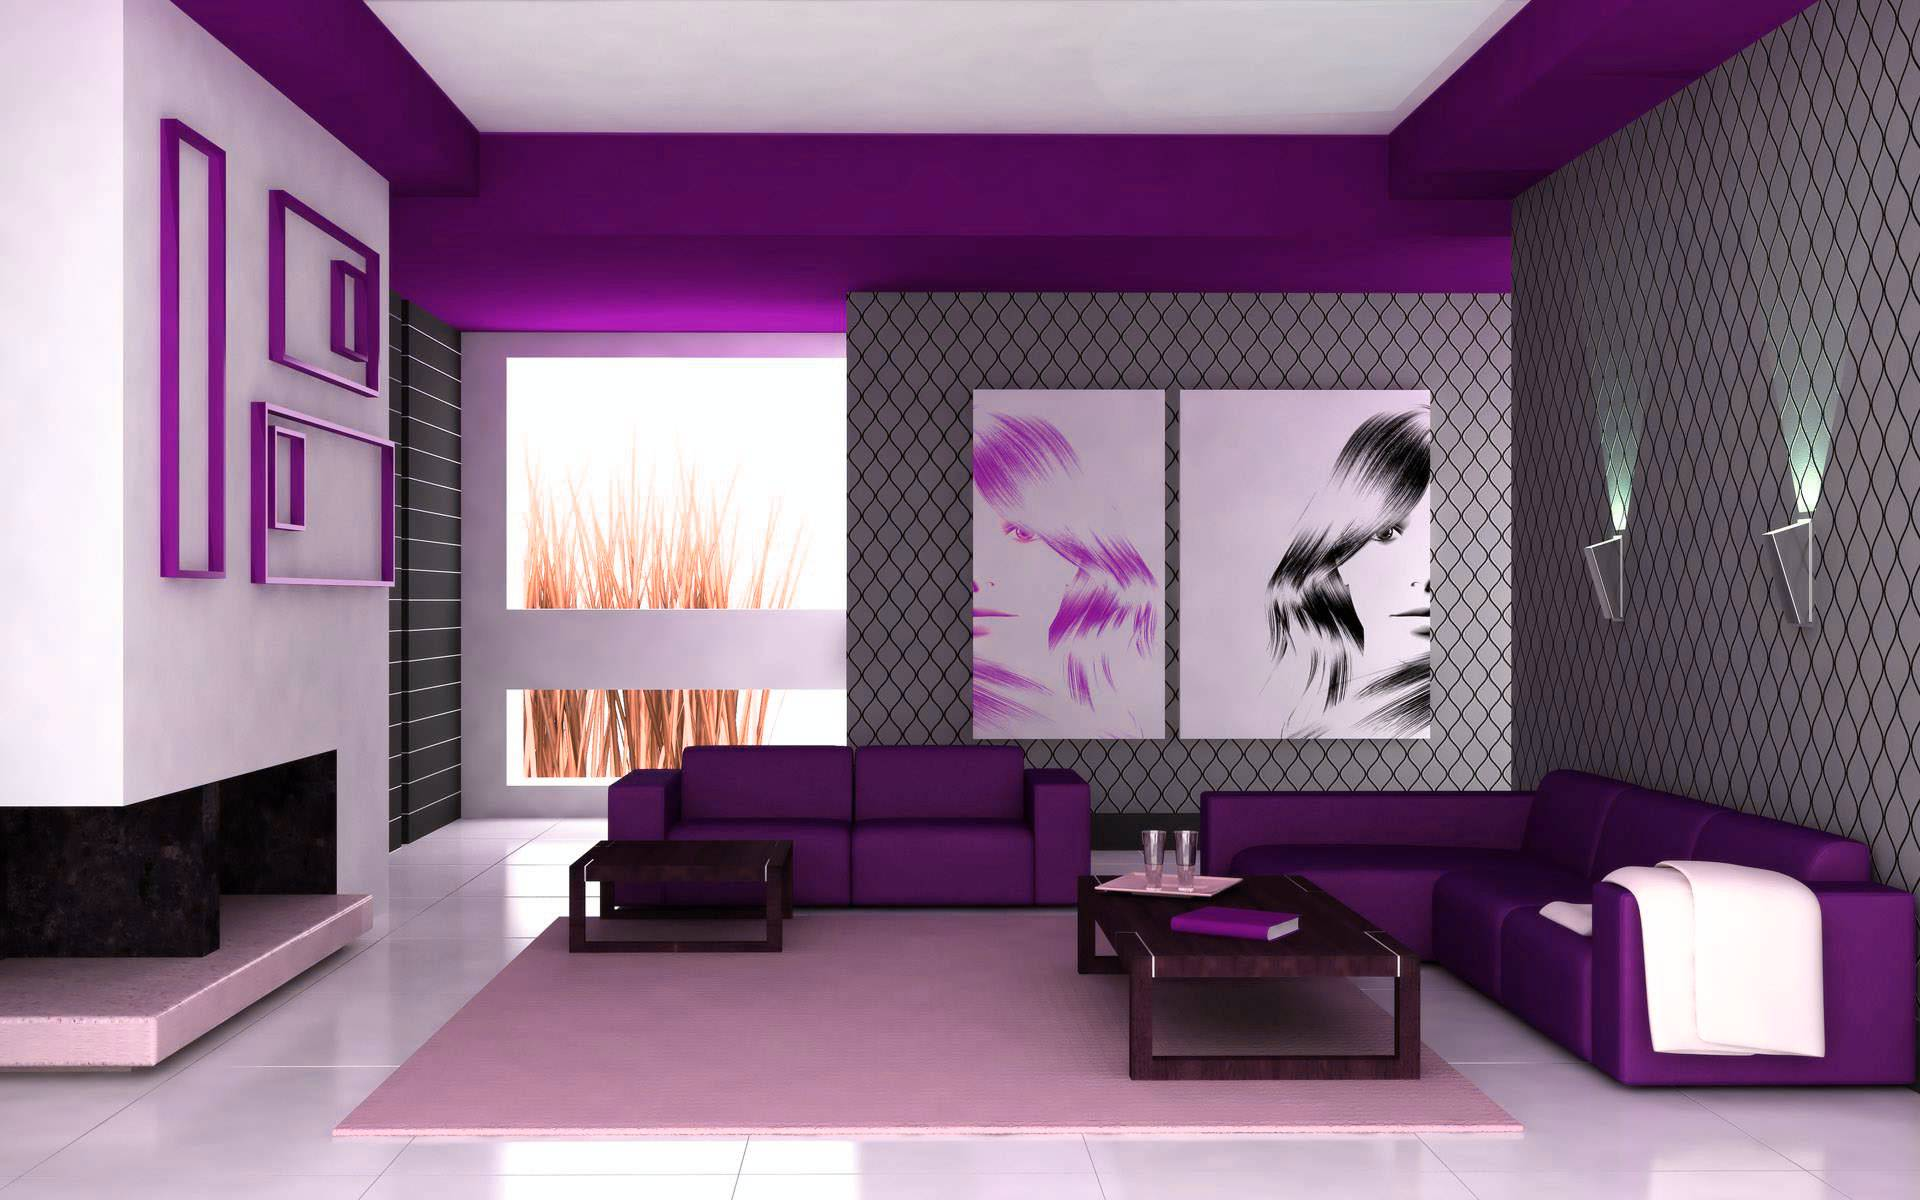 Resident_house_Interior_decoration